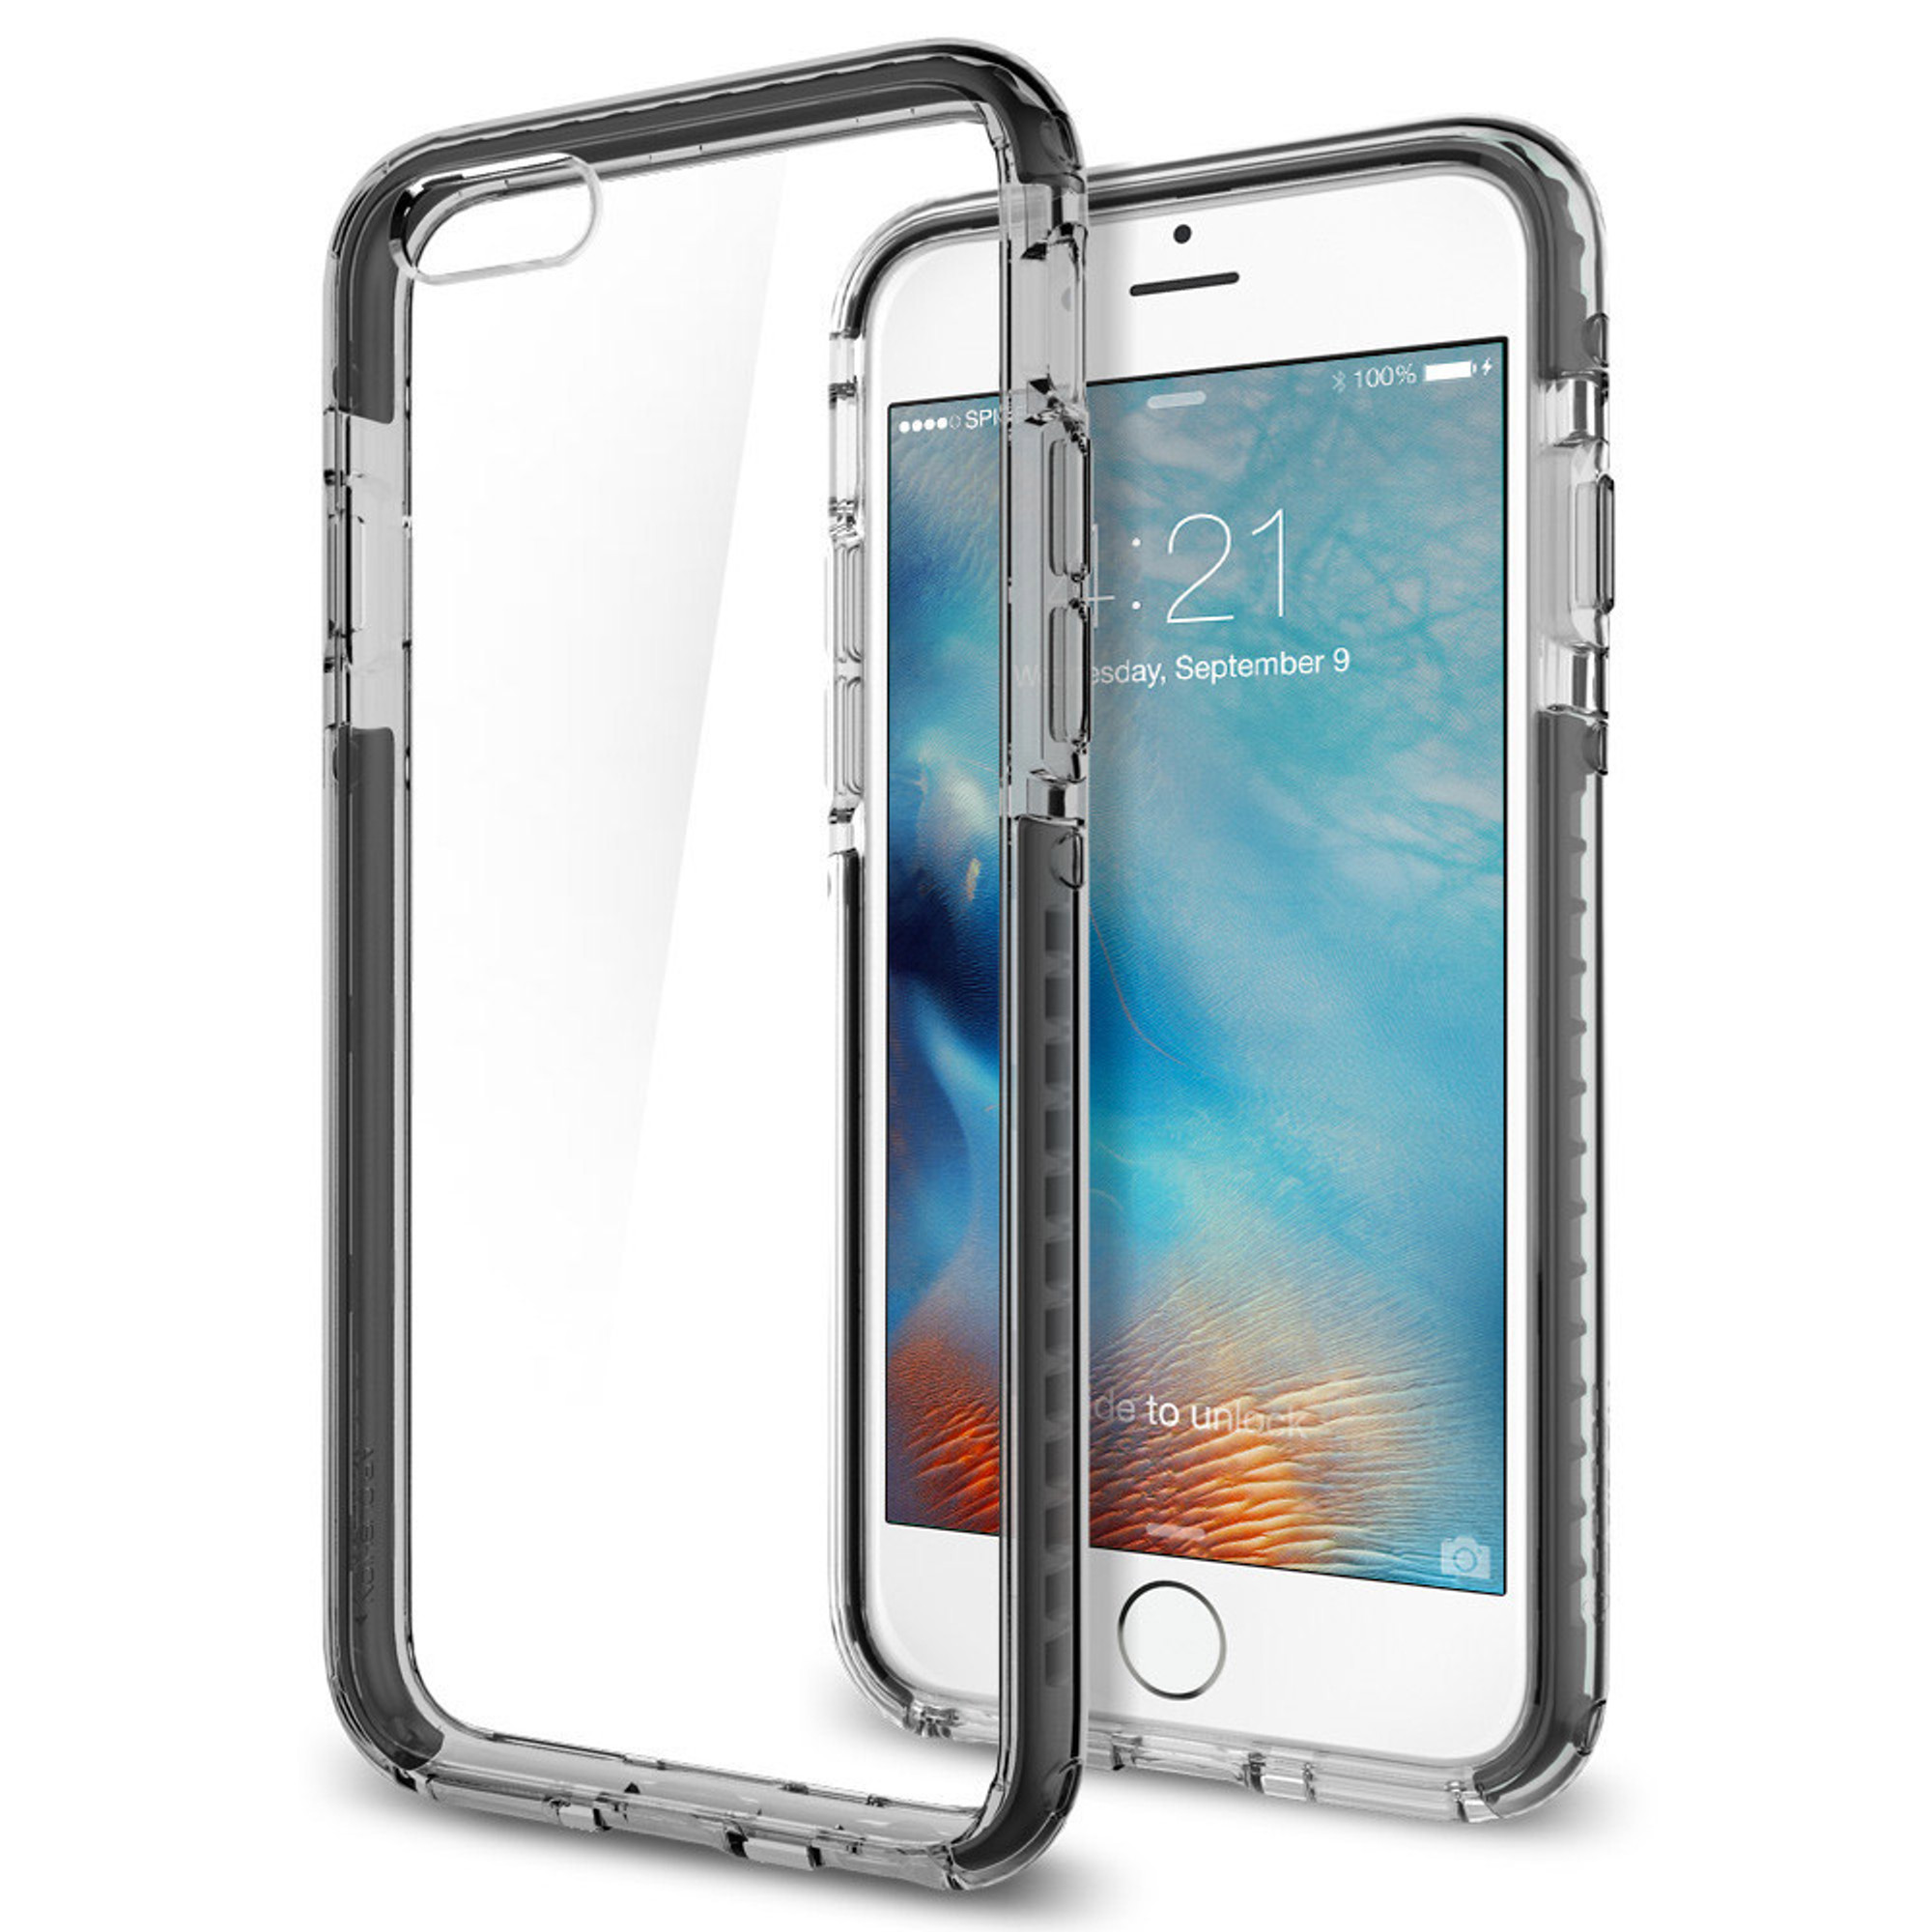 size 40 8a484 bd096 Spigen Ultra Hybrid Tech Case for iPhone 6S / 6 - Crystal Gunmetal